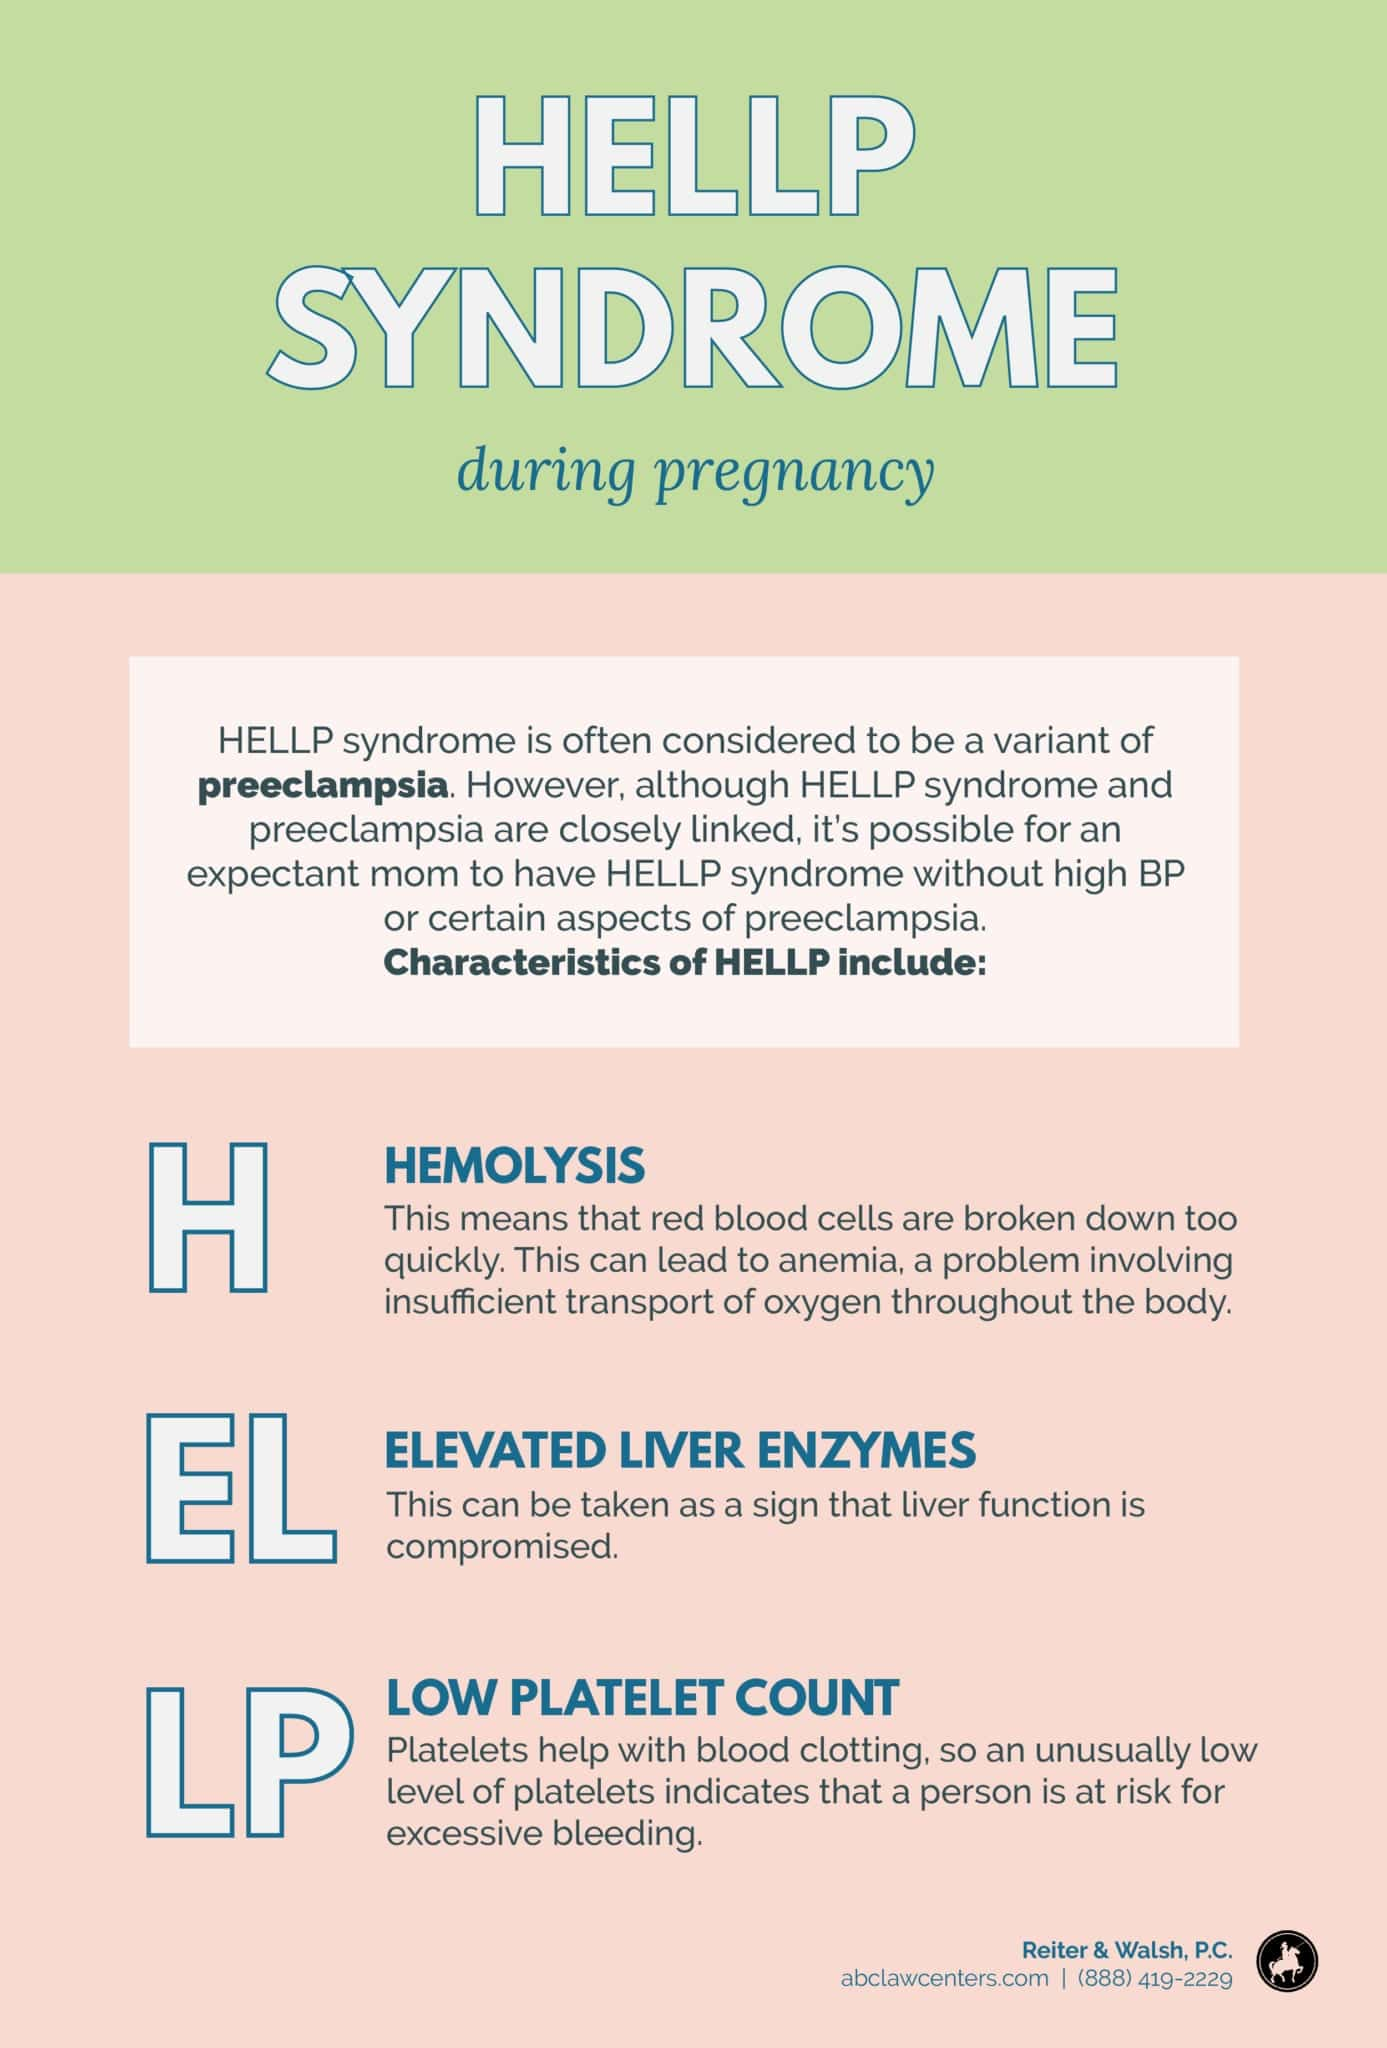 What Is HELLP Syndrome? How Can It Affect Mothers and Babies?